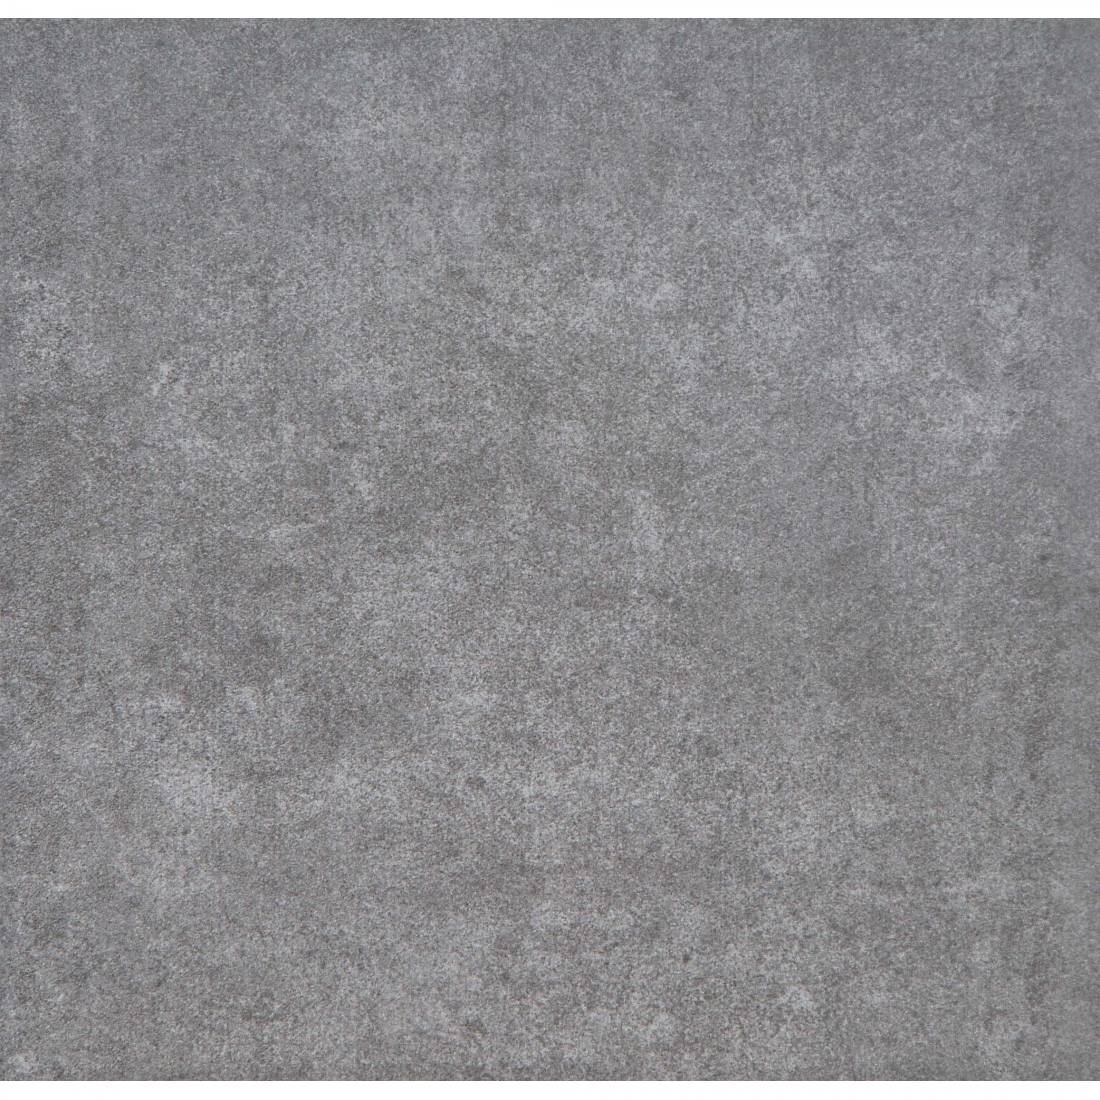 Dream 45x45 Misty Dark Grey Matt 1